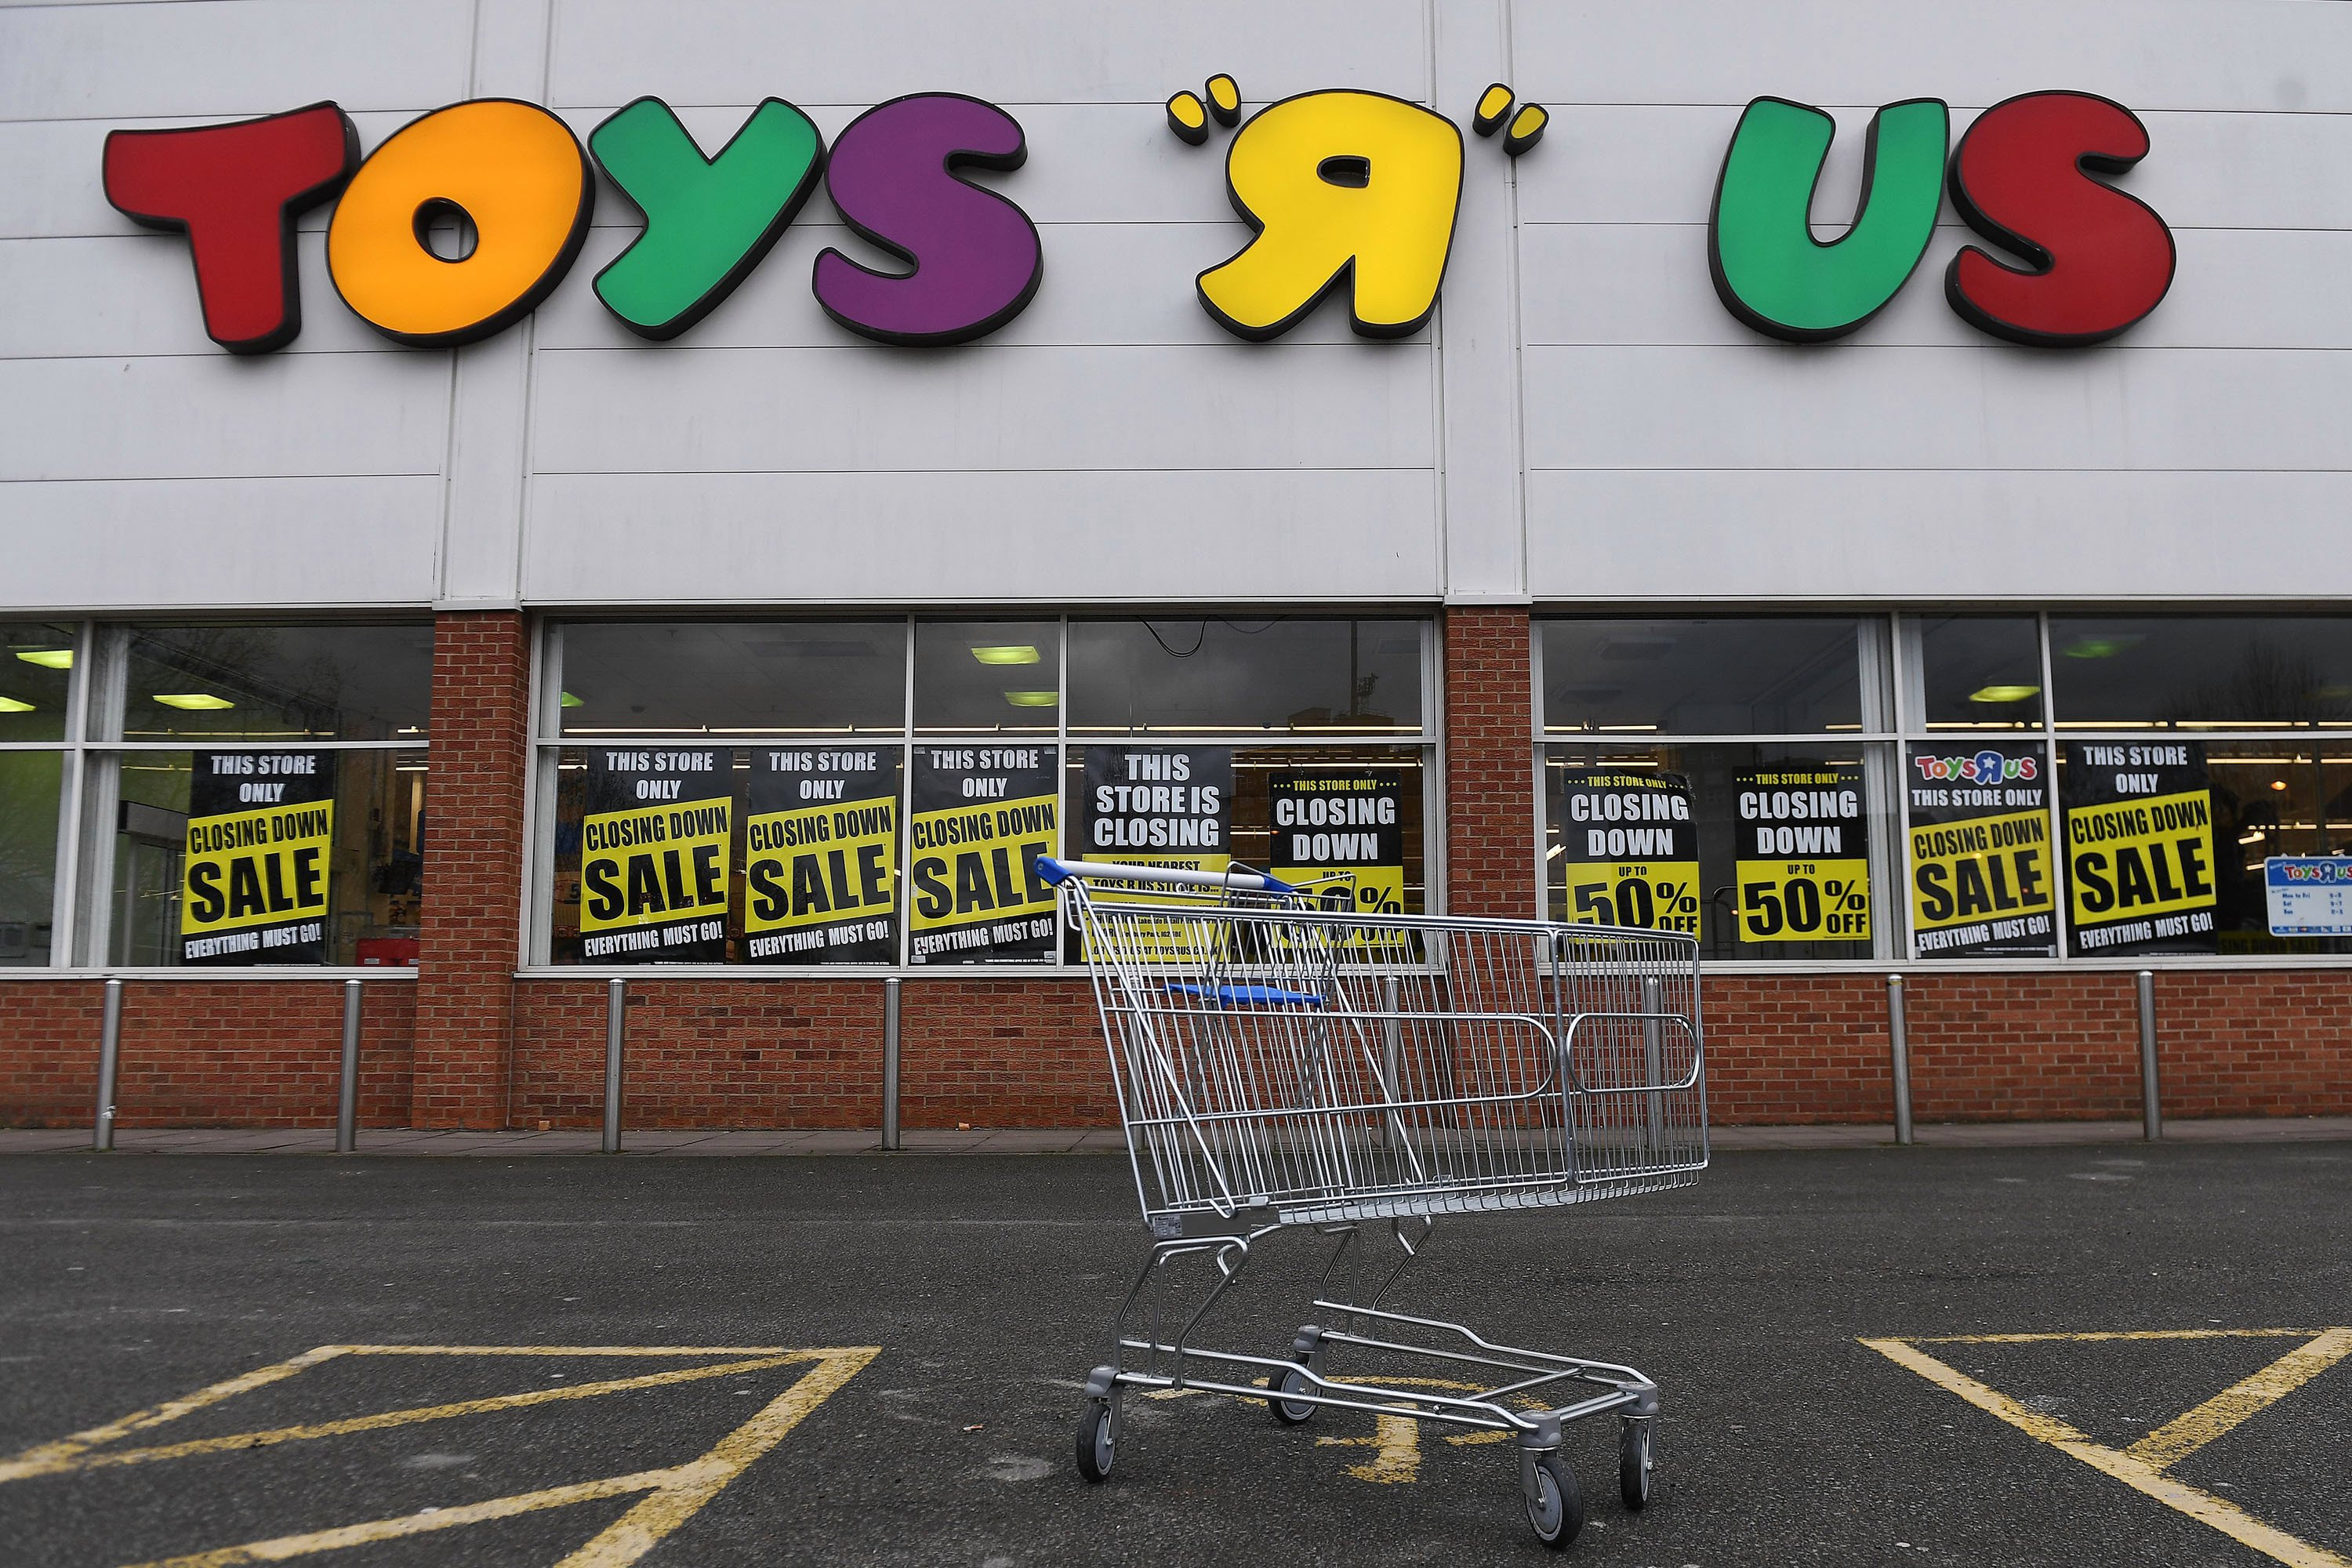 Retailers are trying to profit off Toys R Us' struggles